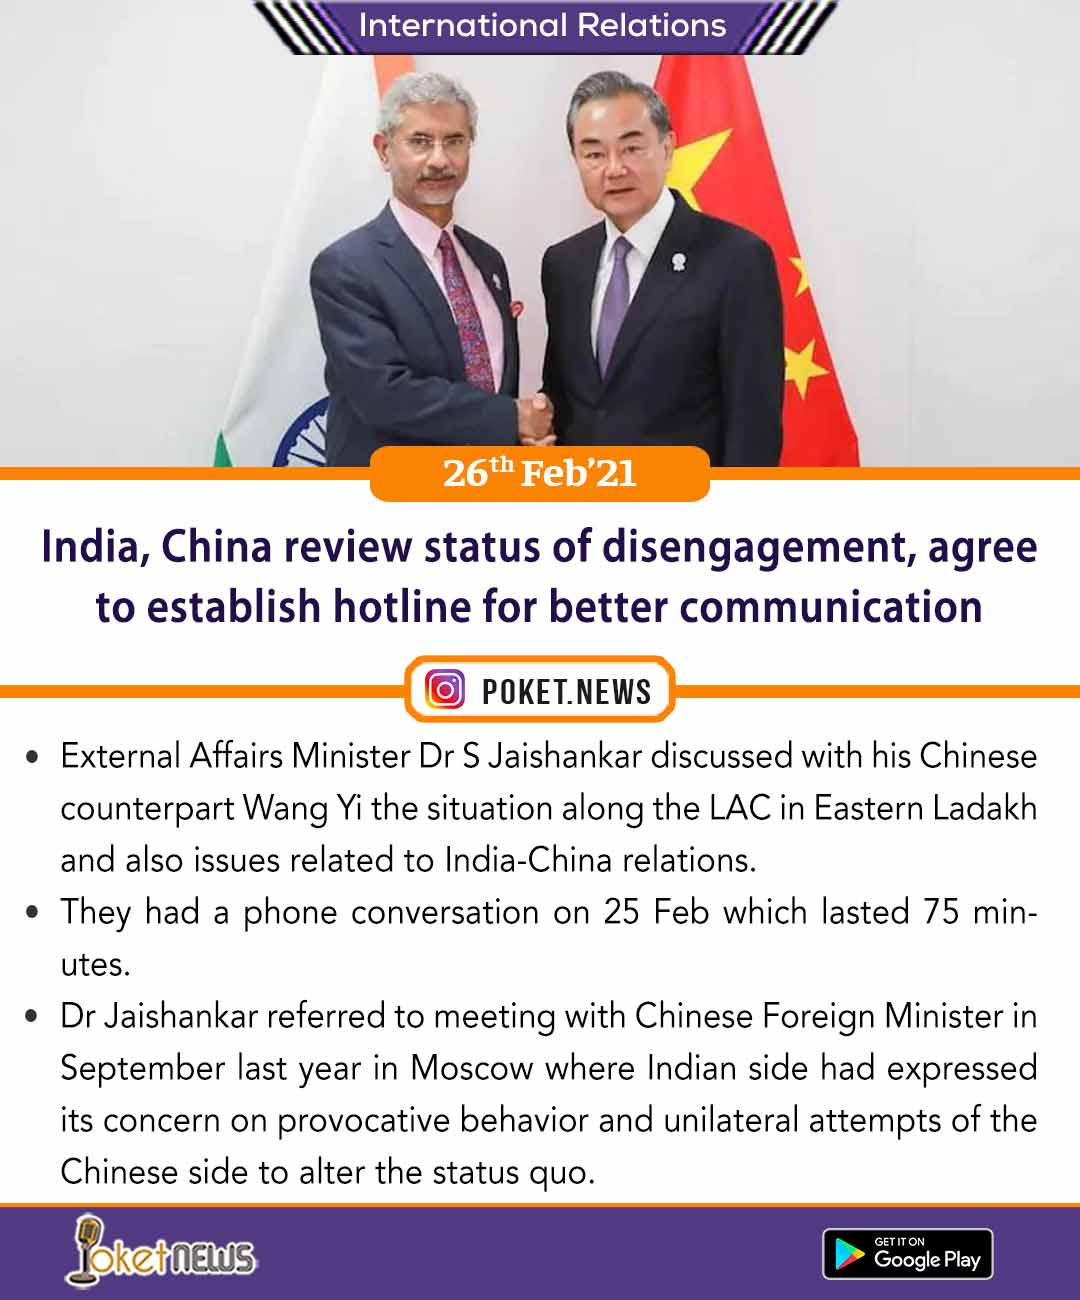 India, China review status of disengagement, agree to establish hotline for better communication